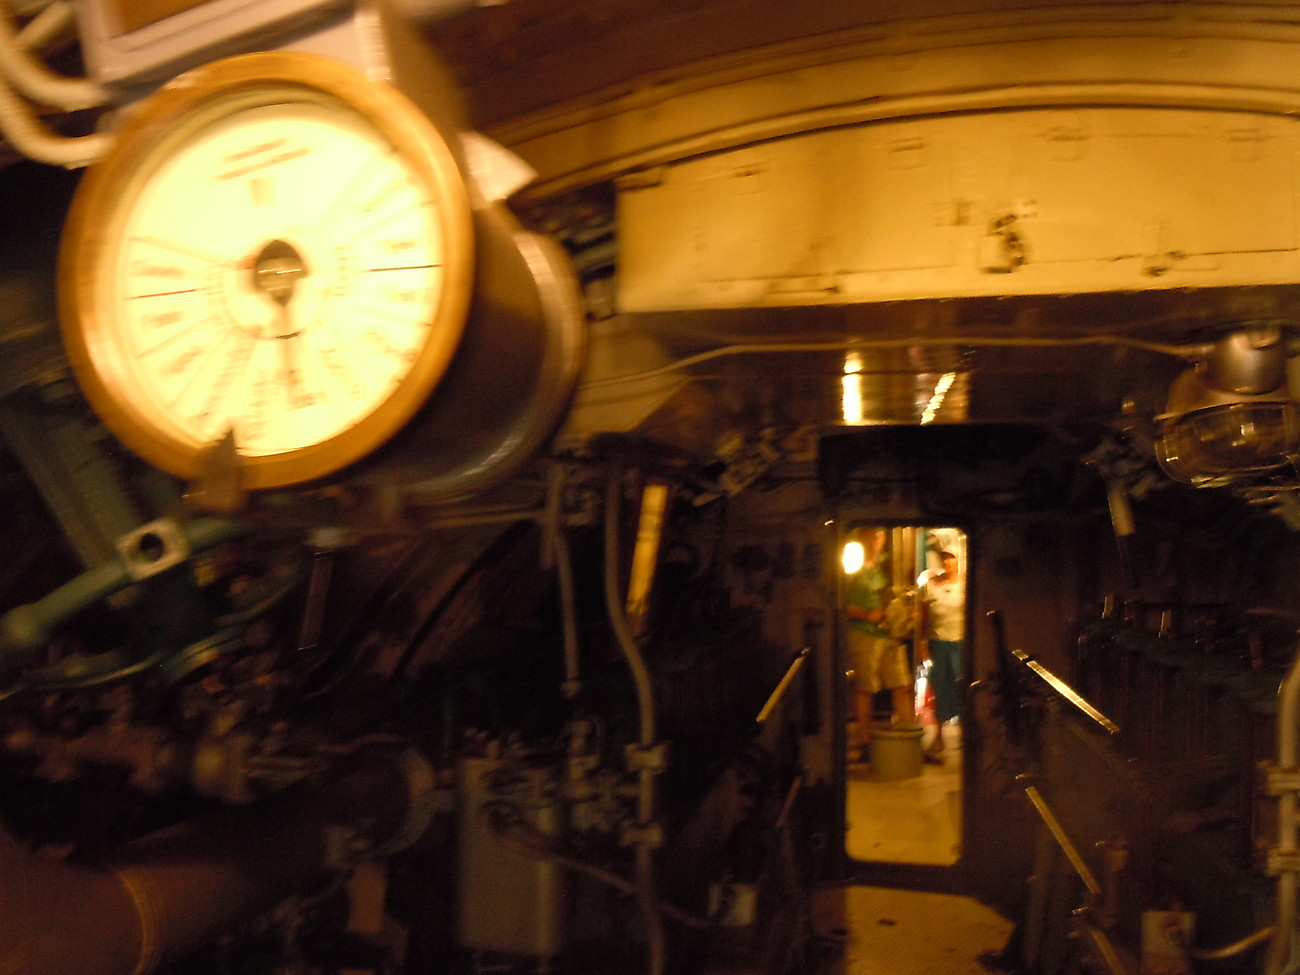 One of the two engine room telegraphs.